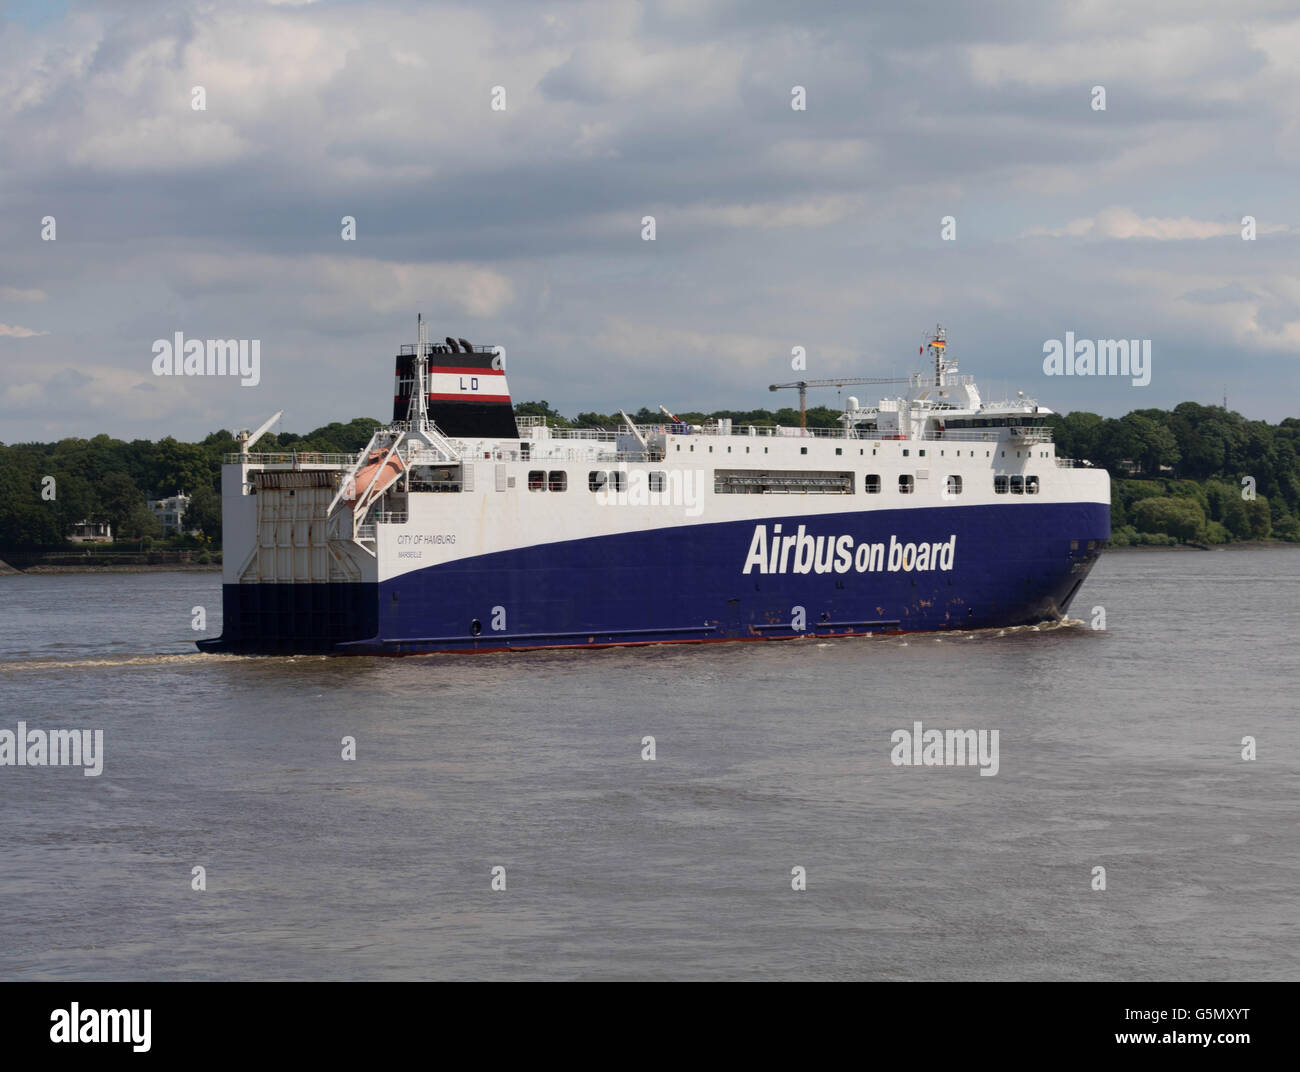 Hamburg, Germany, June 18, 2016, Airbus Transport ship 'City of Hamburg' which is used to transport Airbus - Stock Image